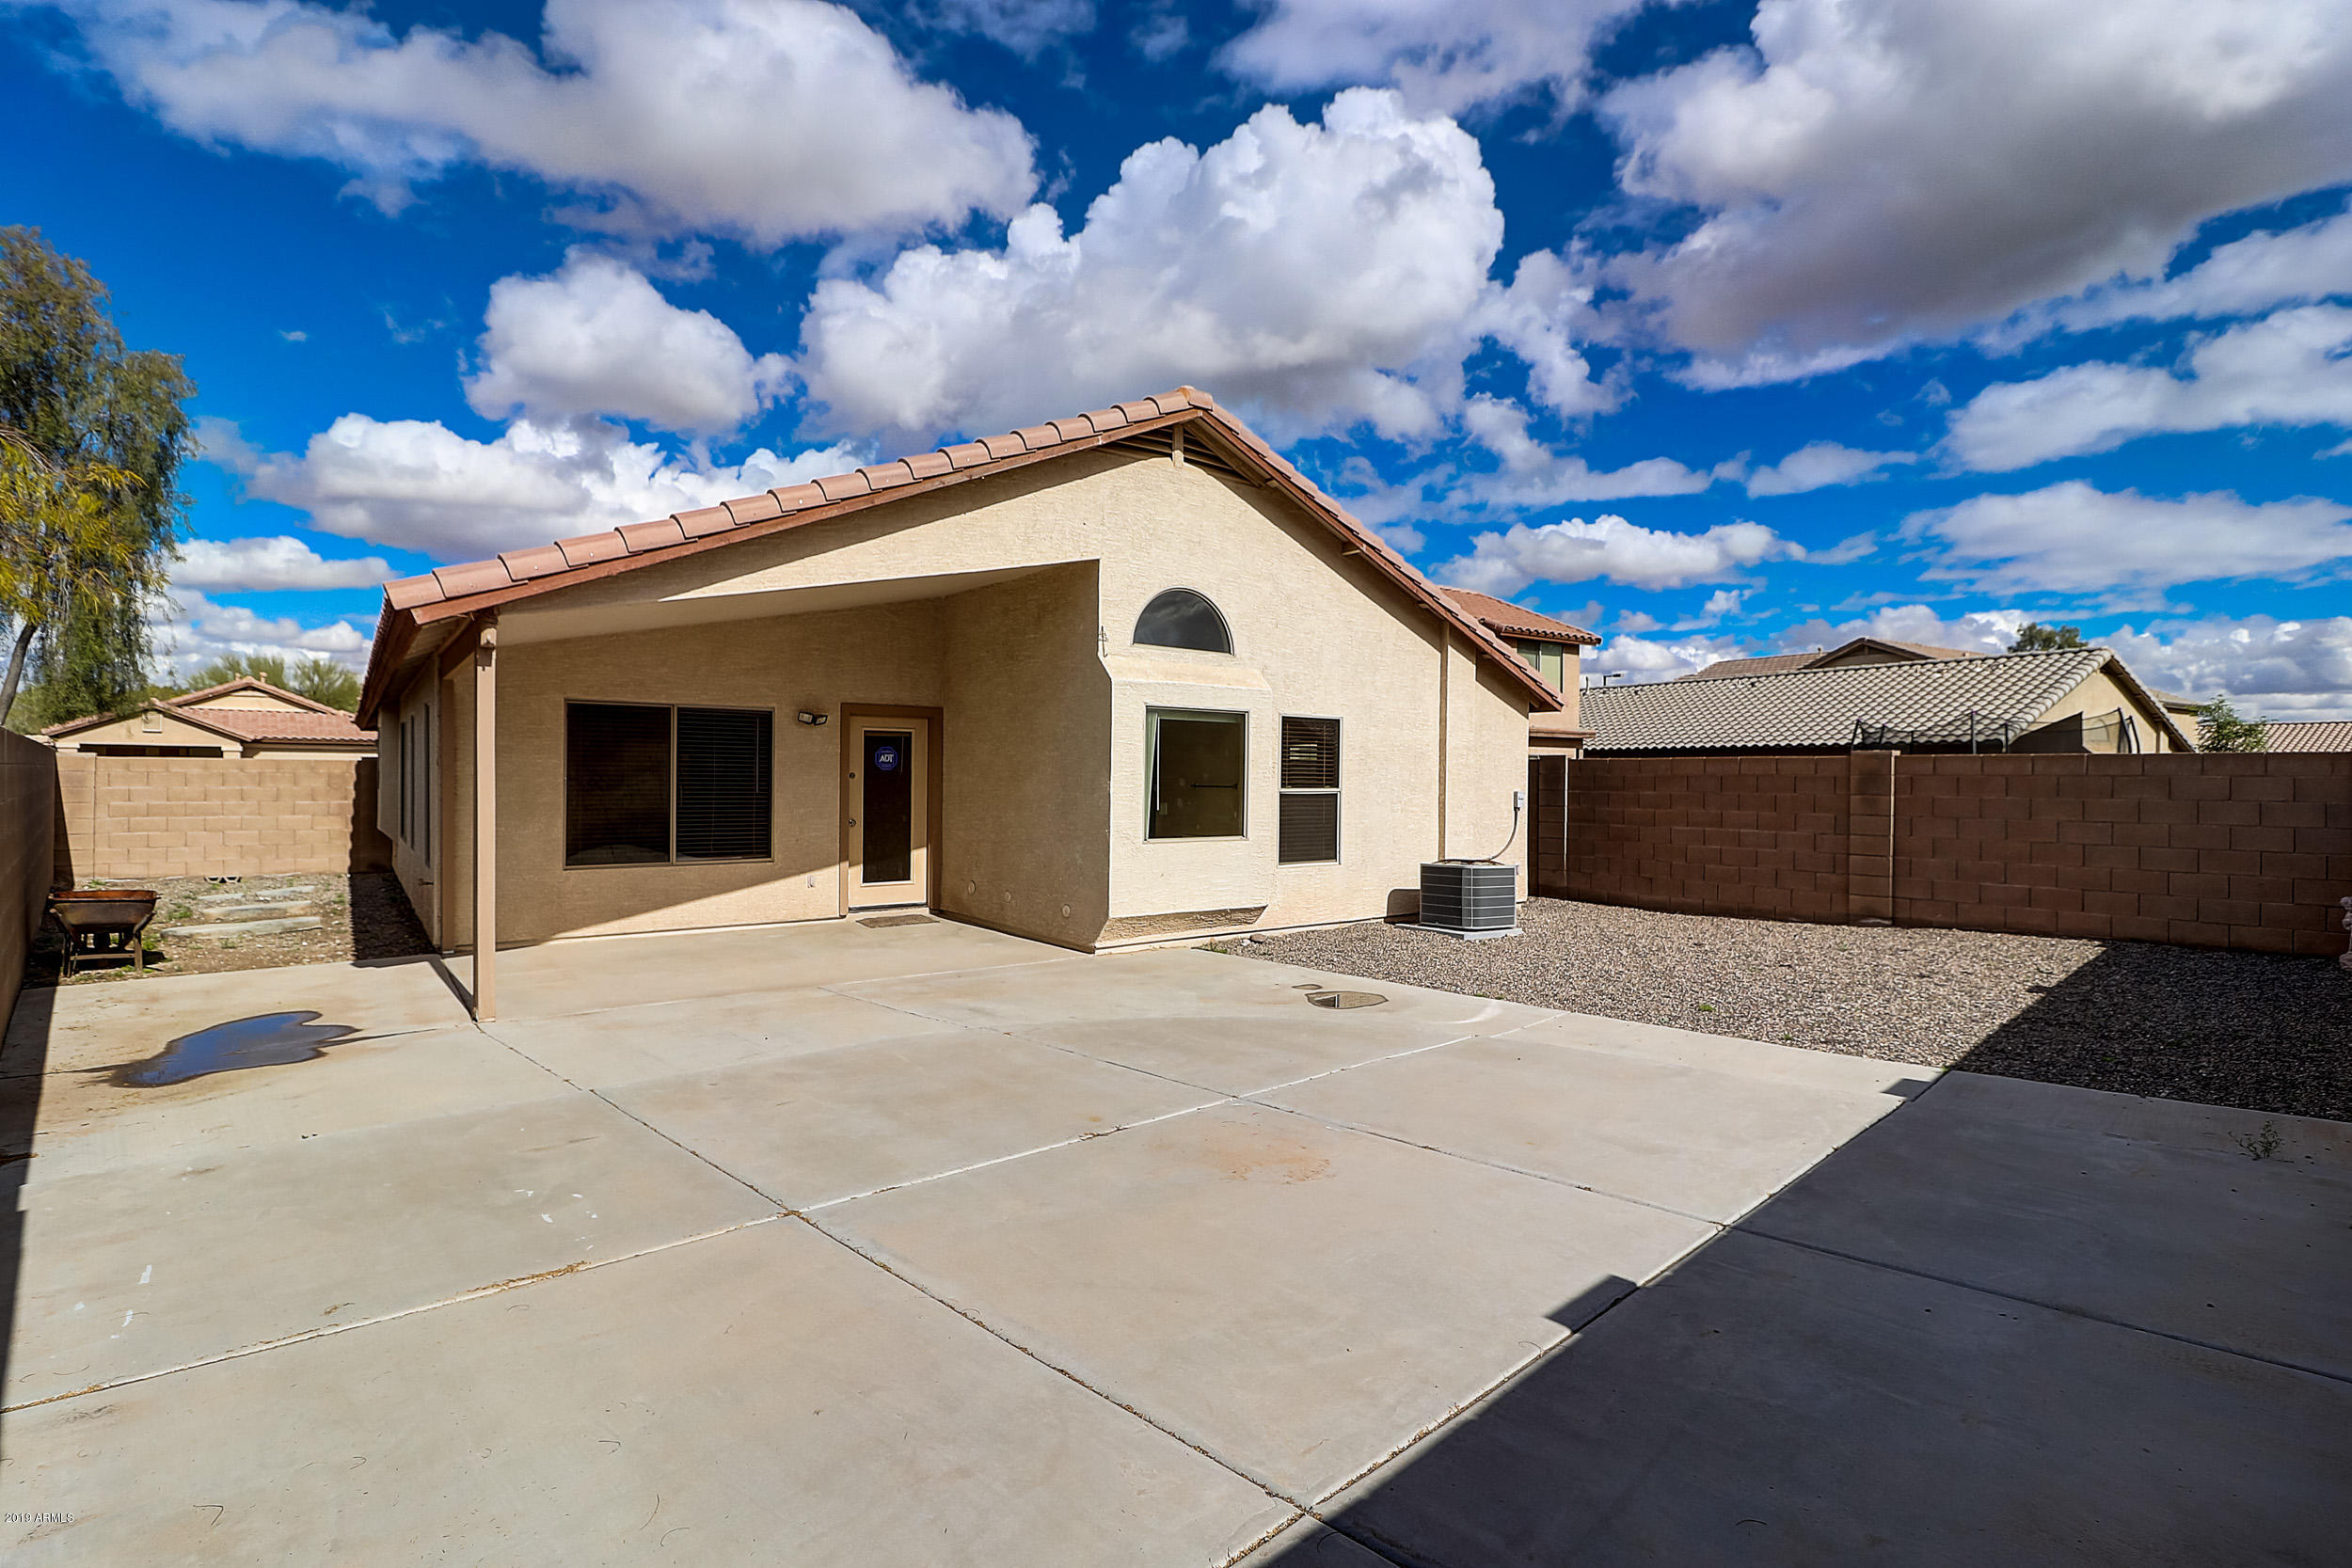 MLS 5879717 12449 W ORANGE Drive, Litchfield Park, AZ 85340 Litchfield Park AZ Wigwam Creek